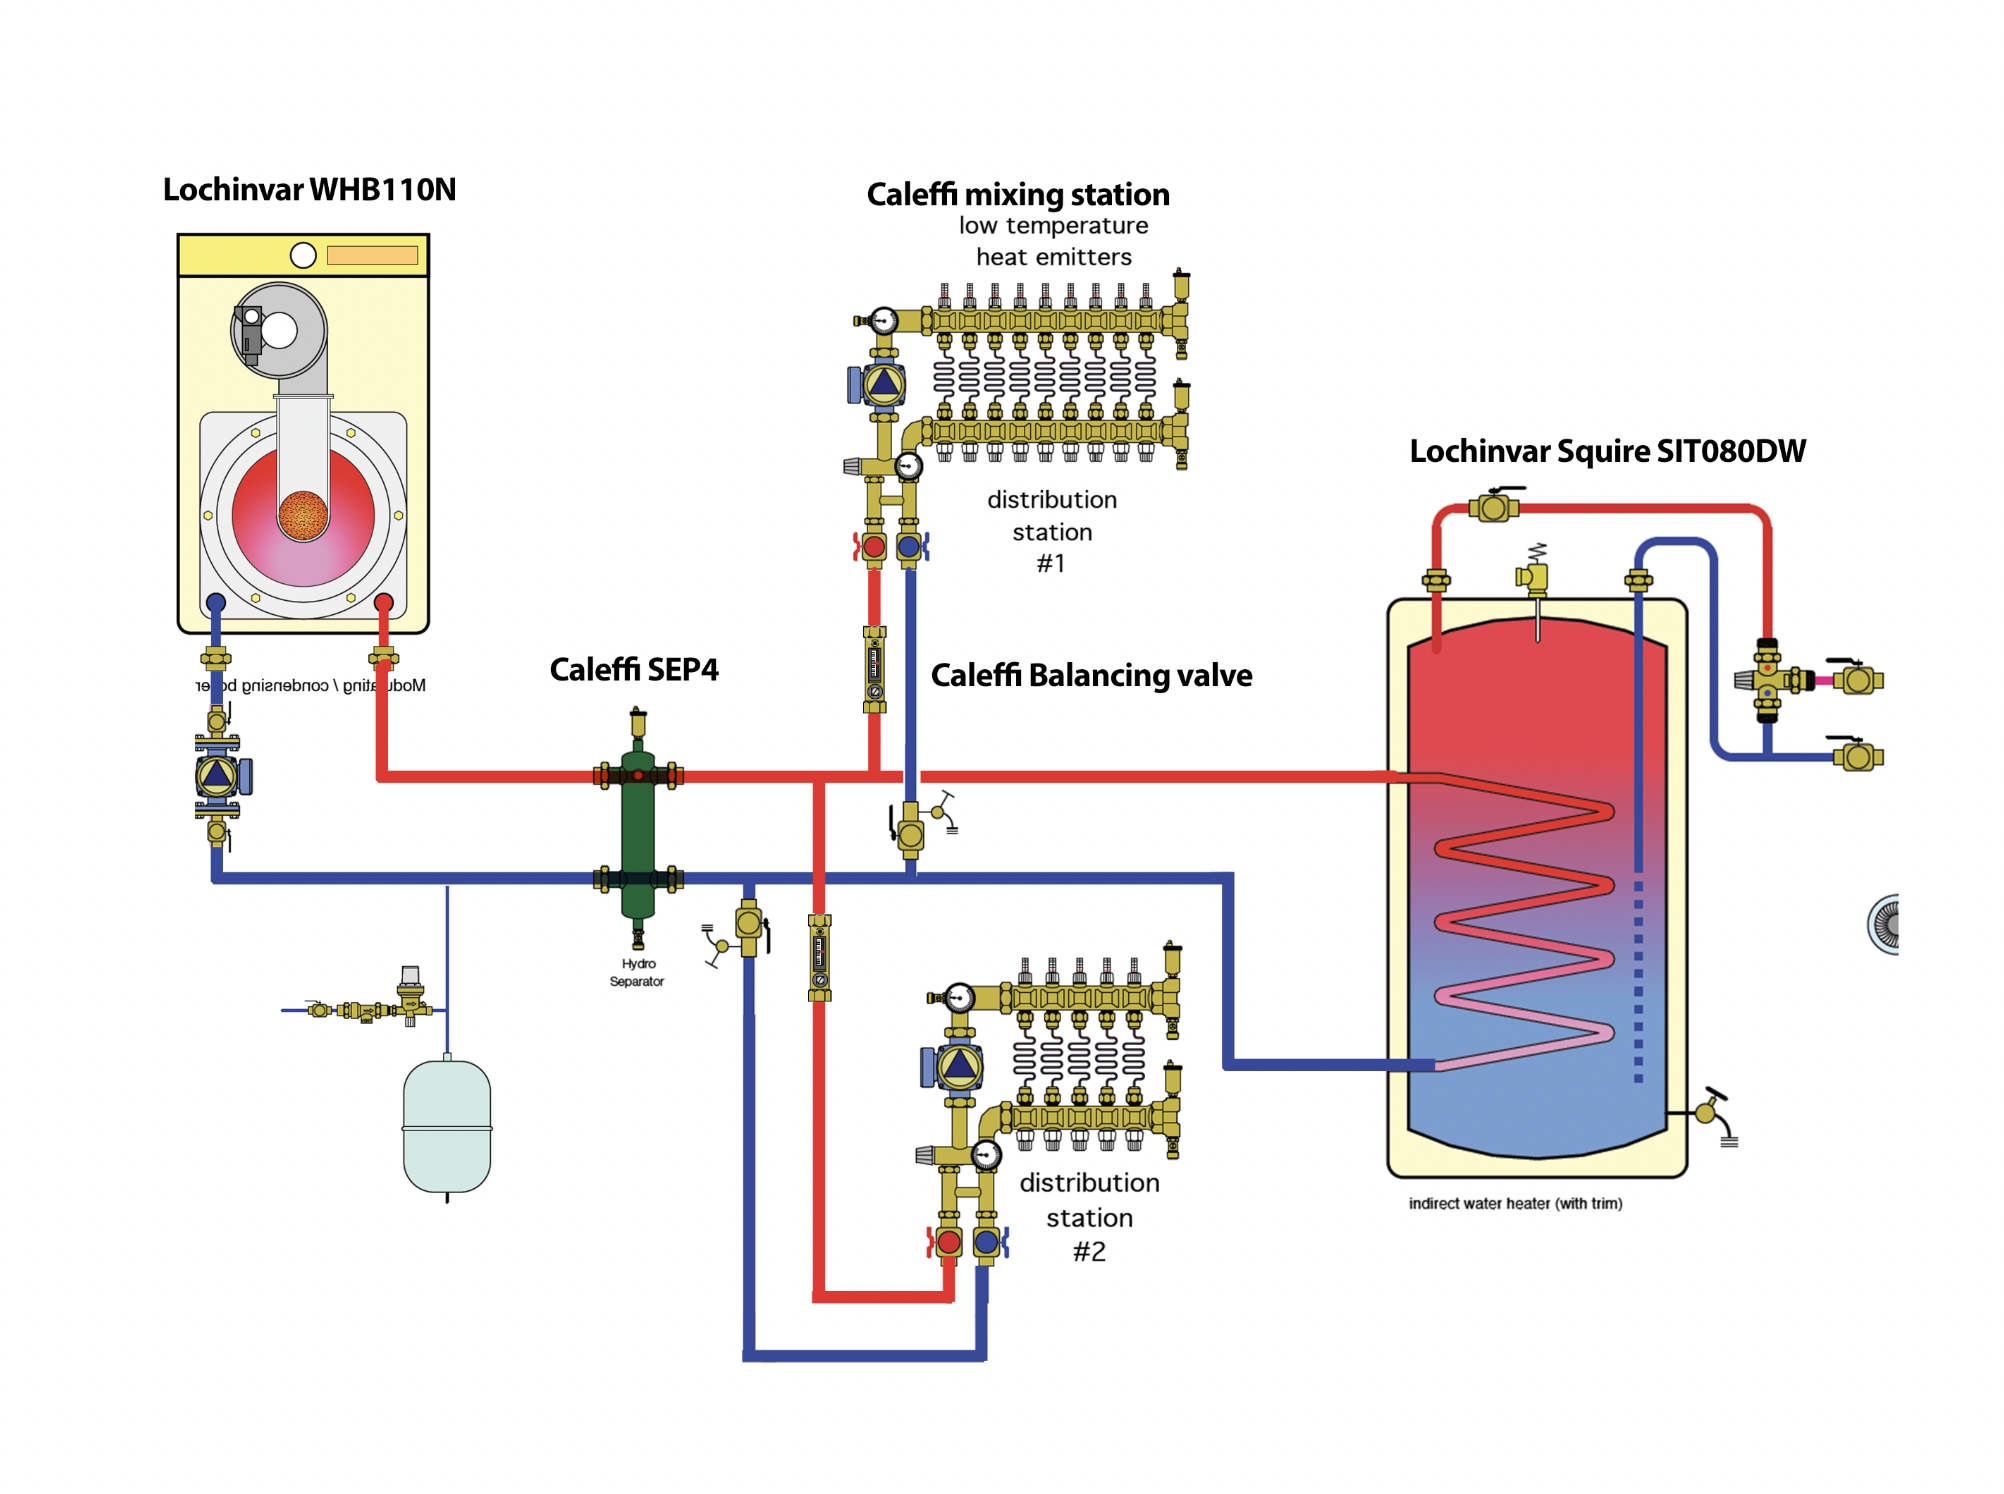 Lochinvar Caleffi Mechanical Schematic Whats Wrong With It Pics Attached Heating Help The Wall